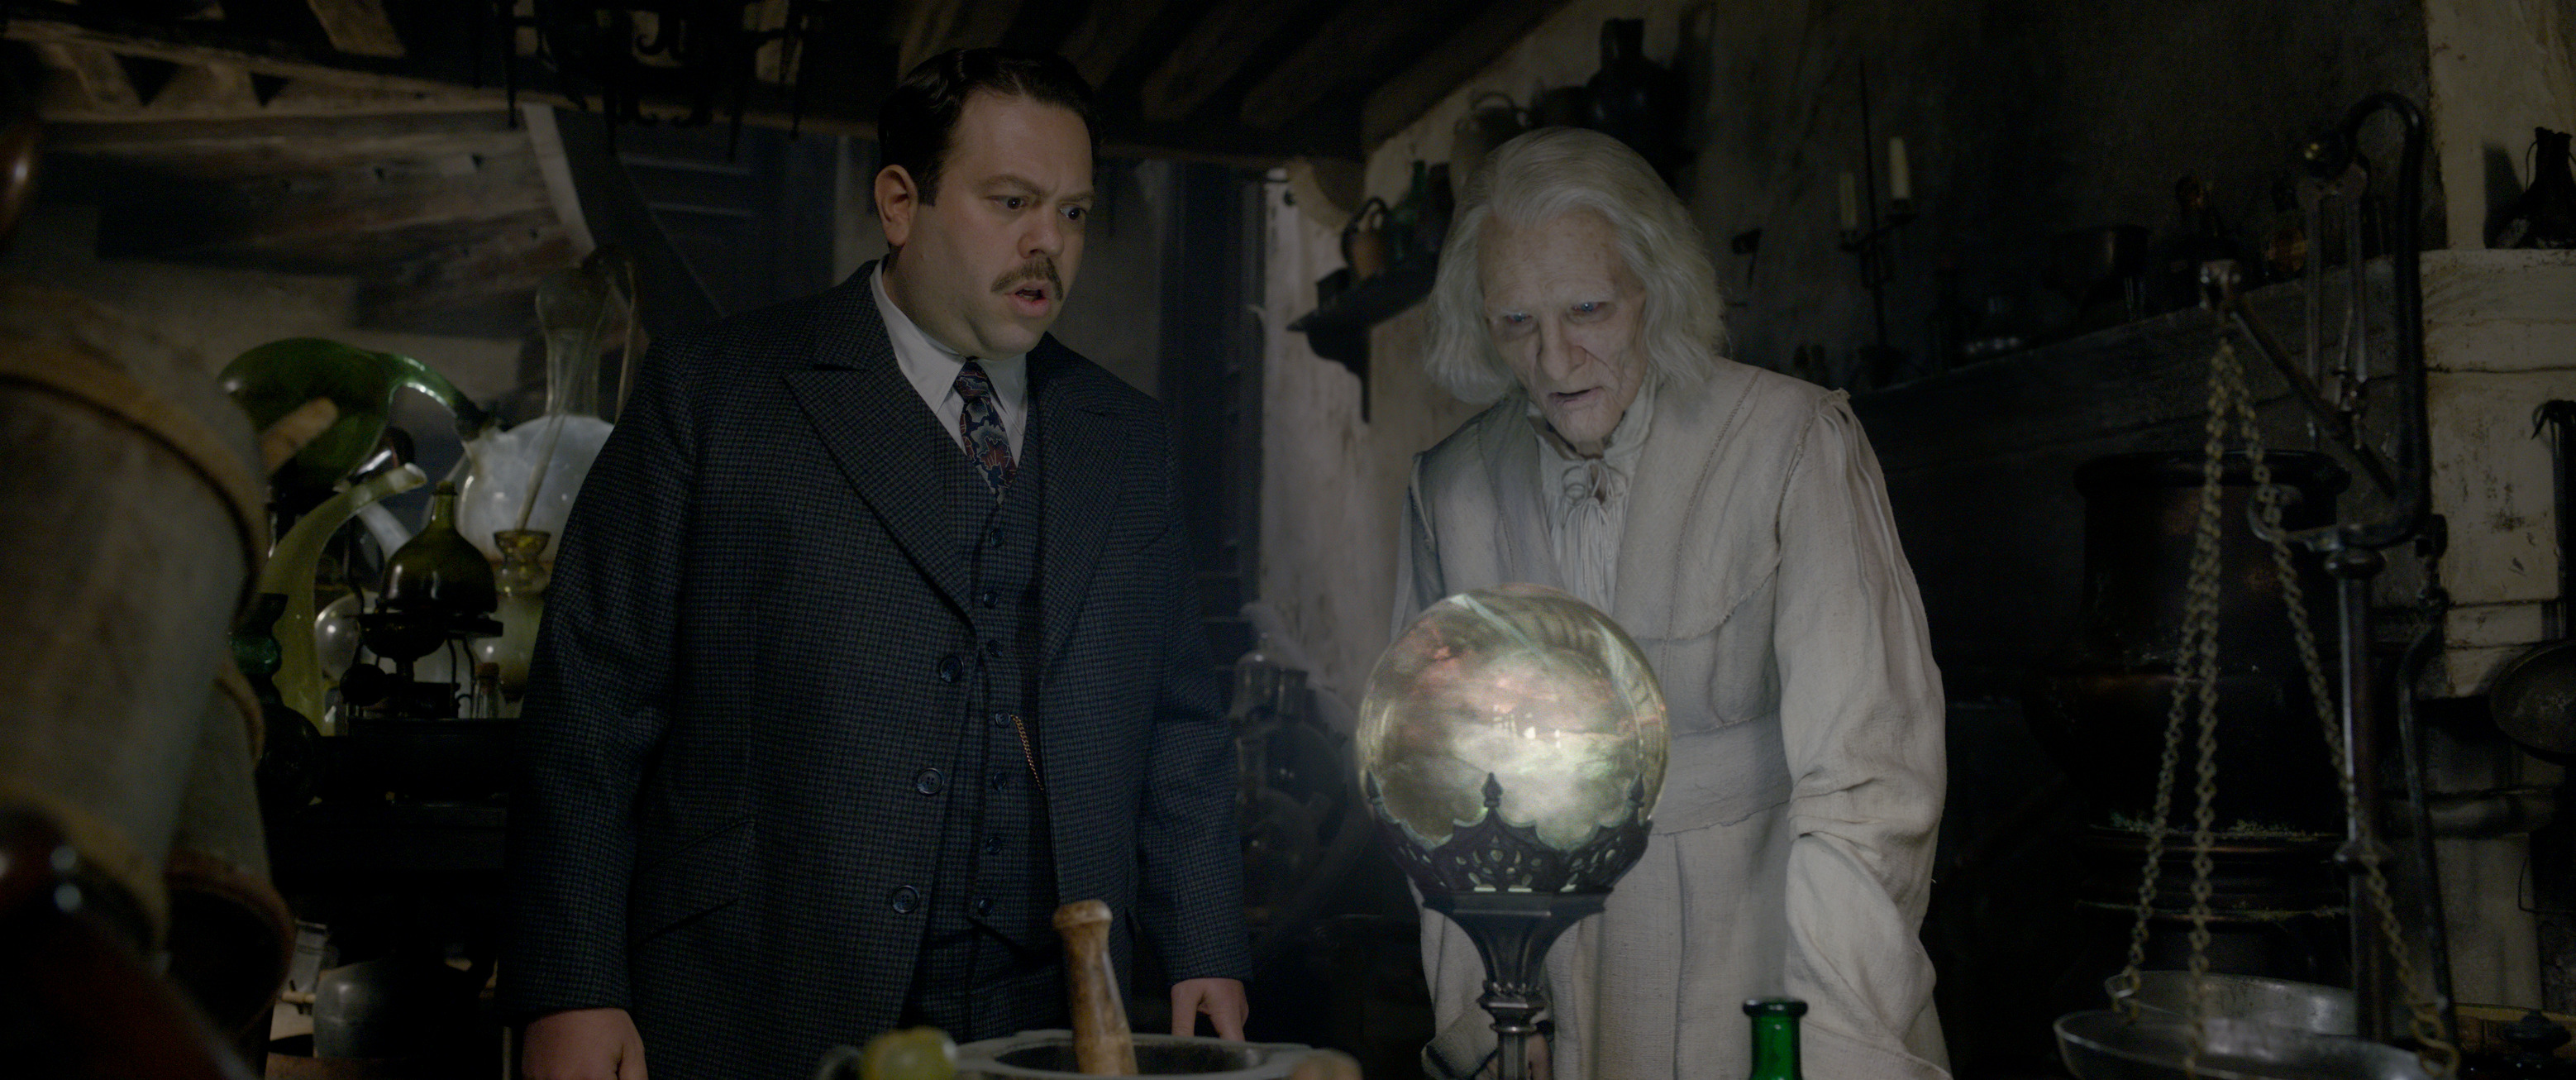 """Fantastic Beasts: The Crimes of Grindelwald"": Jacob Kowalski (Dan Fogler) and Nicolas Flamel (Brontis Jodorowsky)"